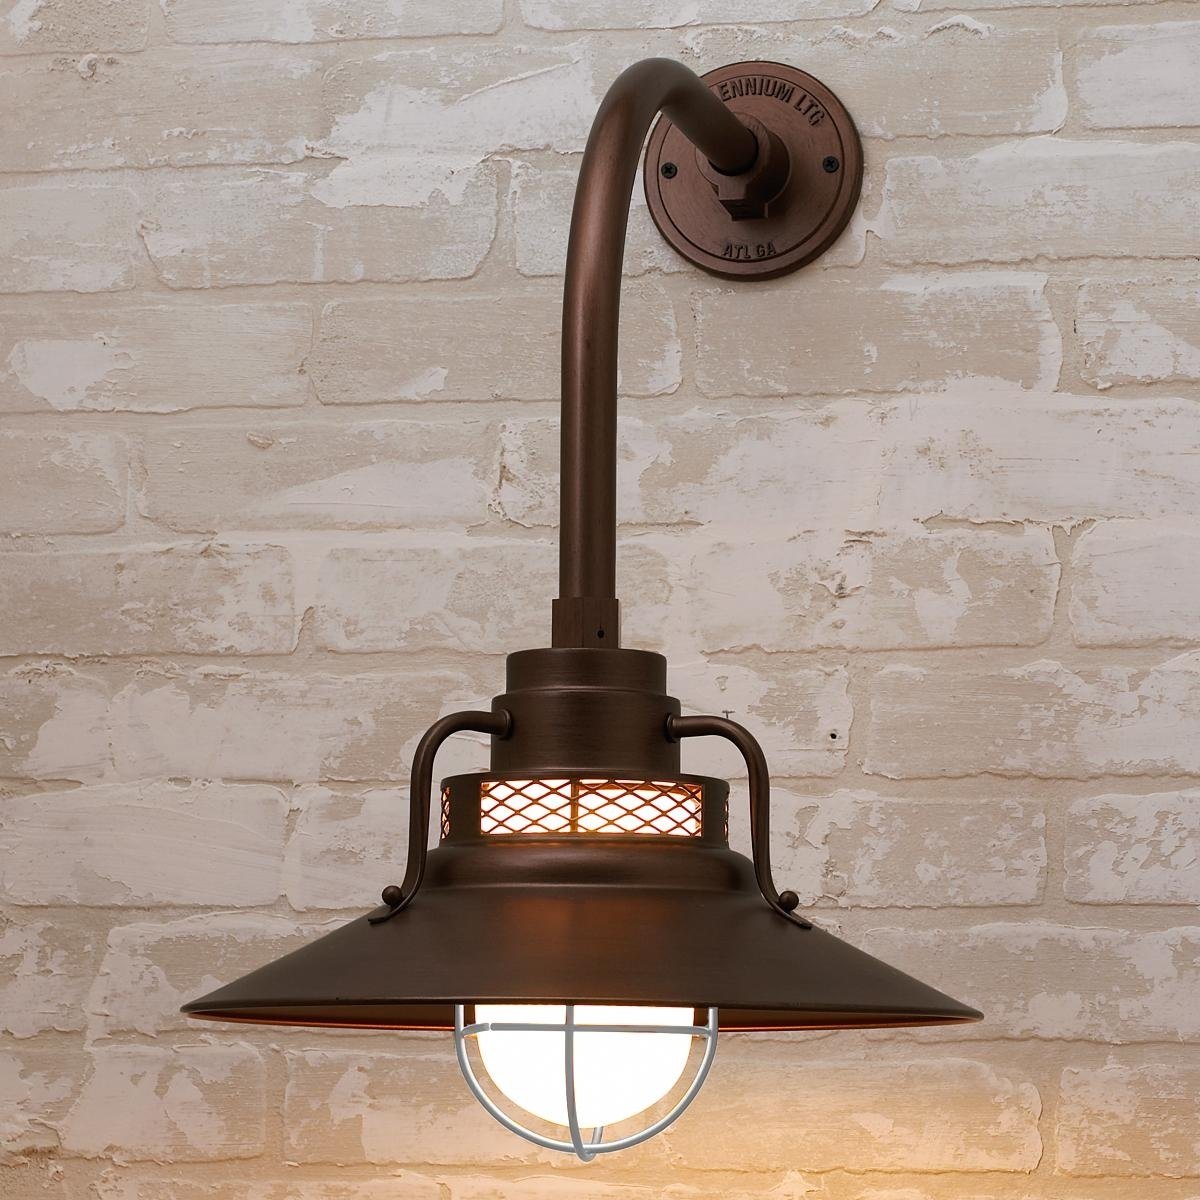 Seaside Nostalgia Outdoor Wall Light | Outdoor Walls, Lights And Walls Inside Outdoor Wall Garage Lights (#10 of 15)